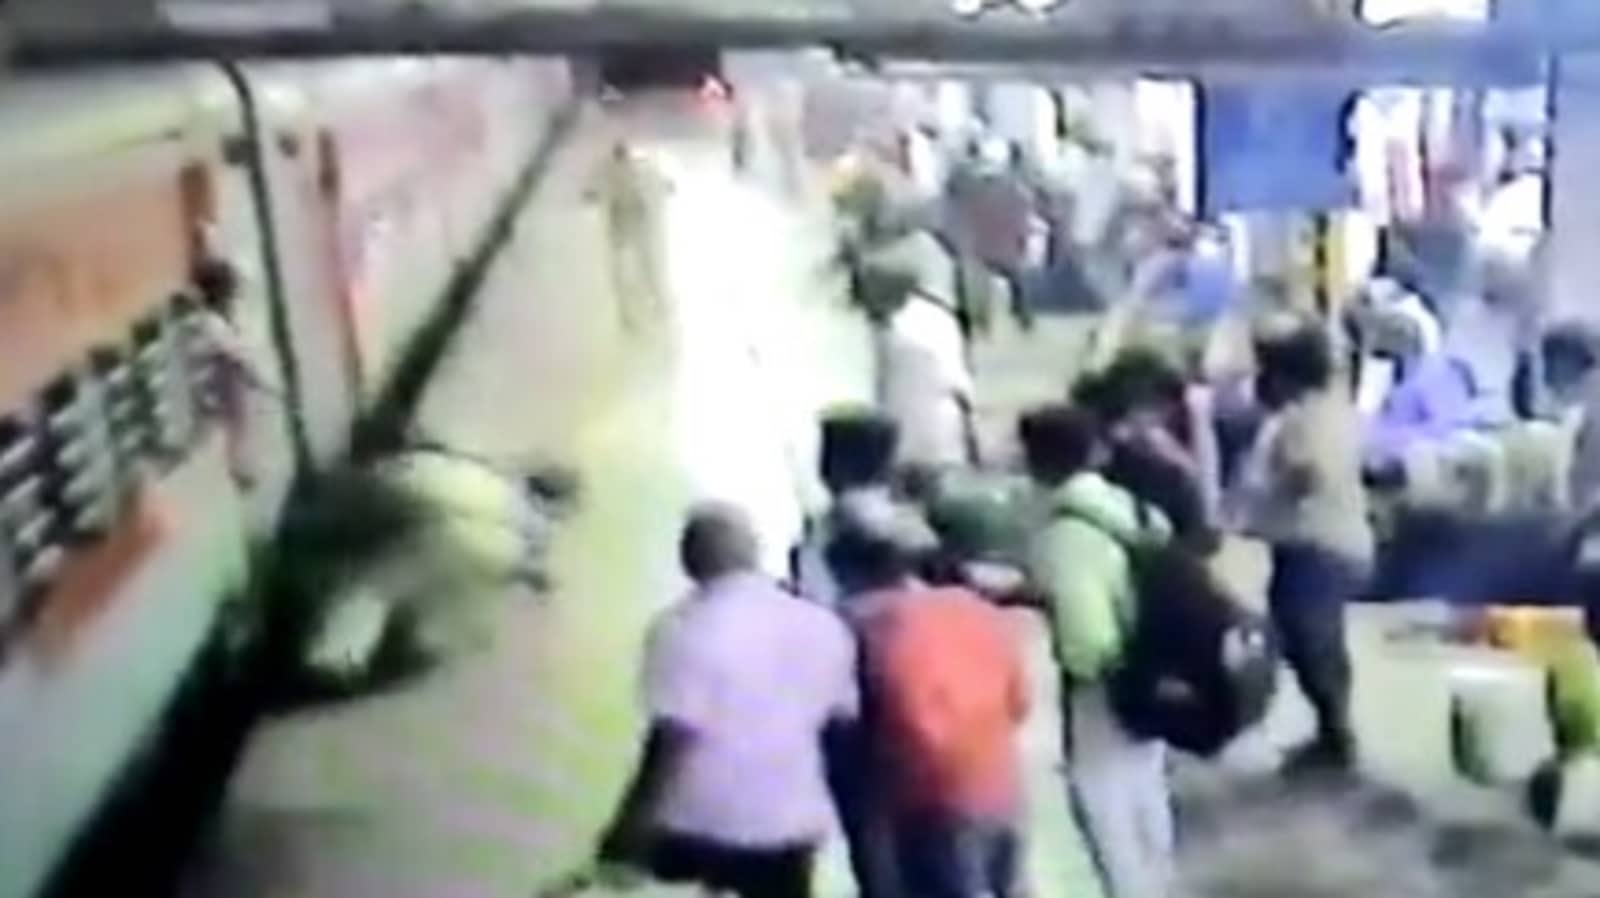 Tragedy averted as RPF constable saves woman who fell from train at Kalyan